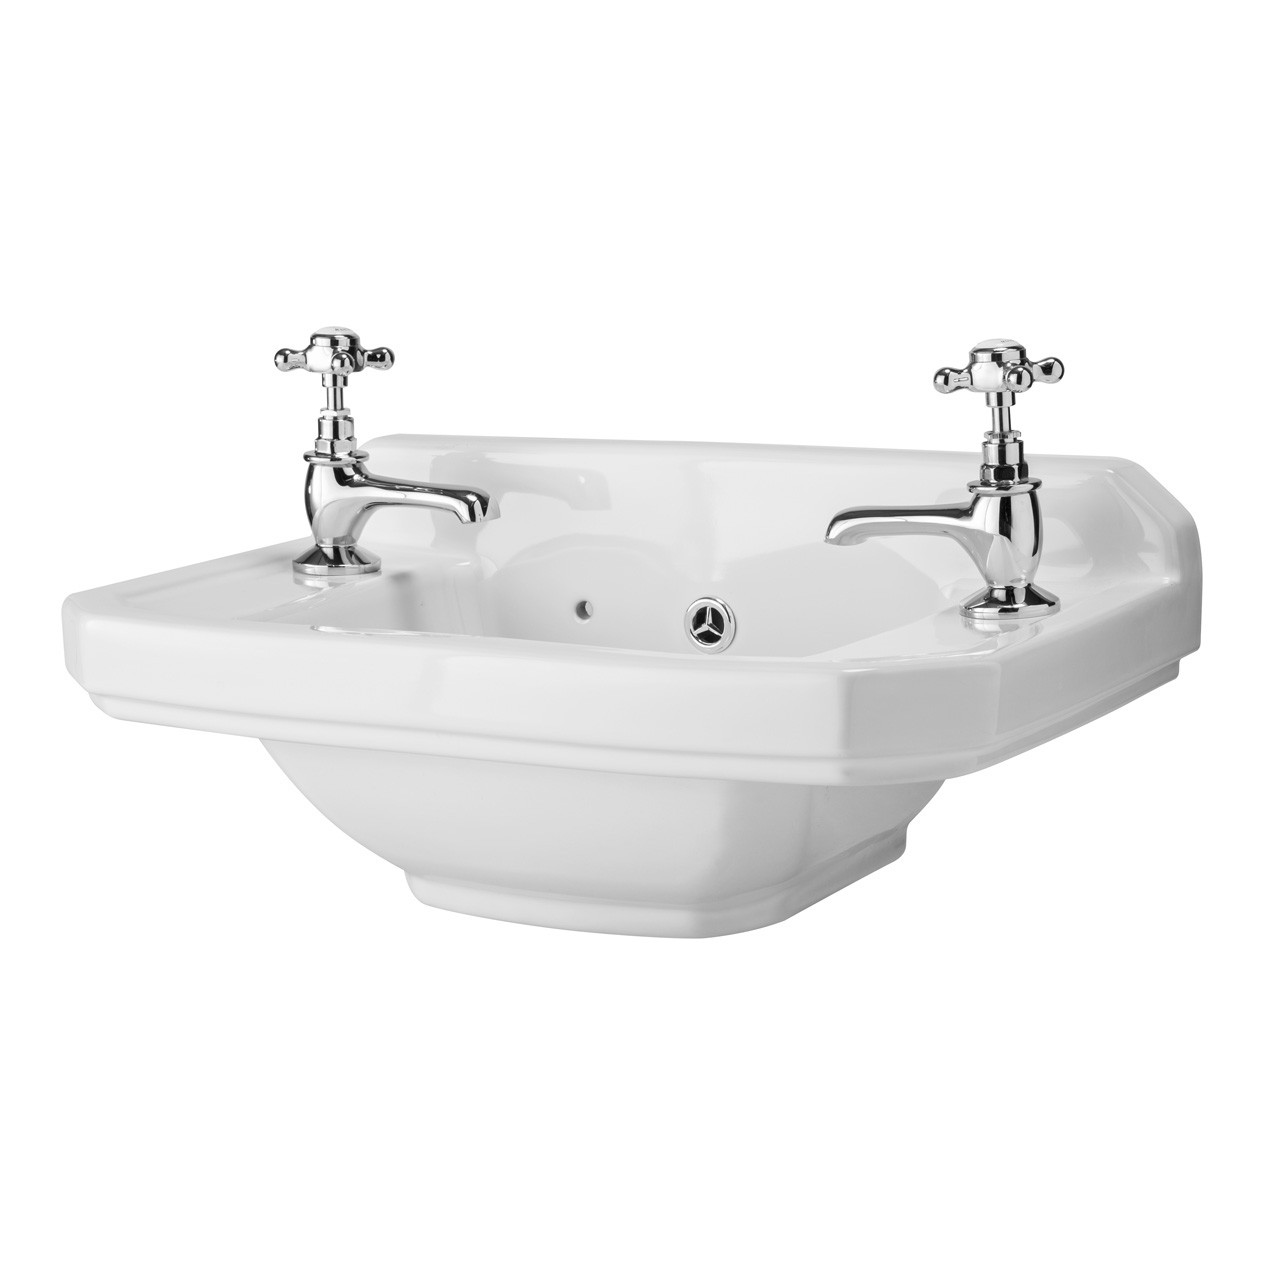 Premier Carlton 515mm Cloakroom Basin with 2 Tap Holes - NCS829